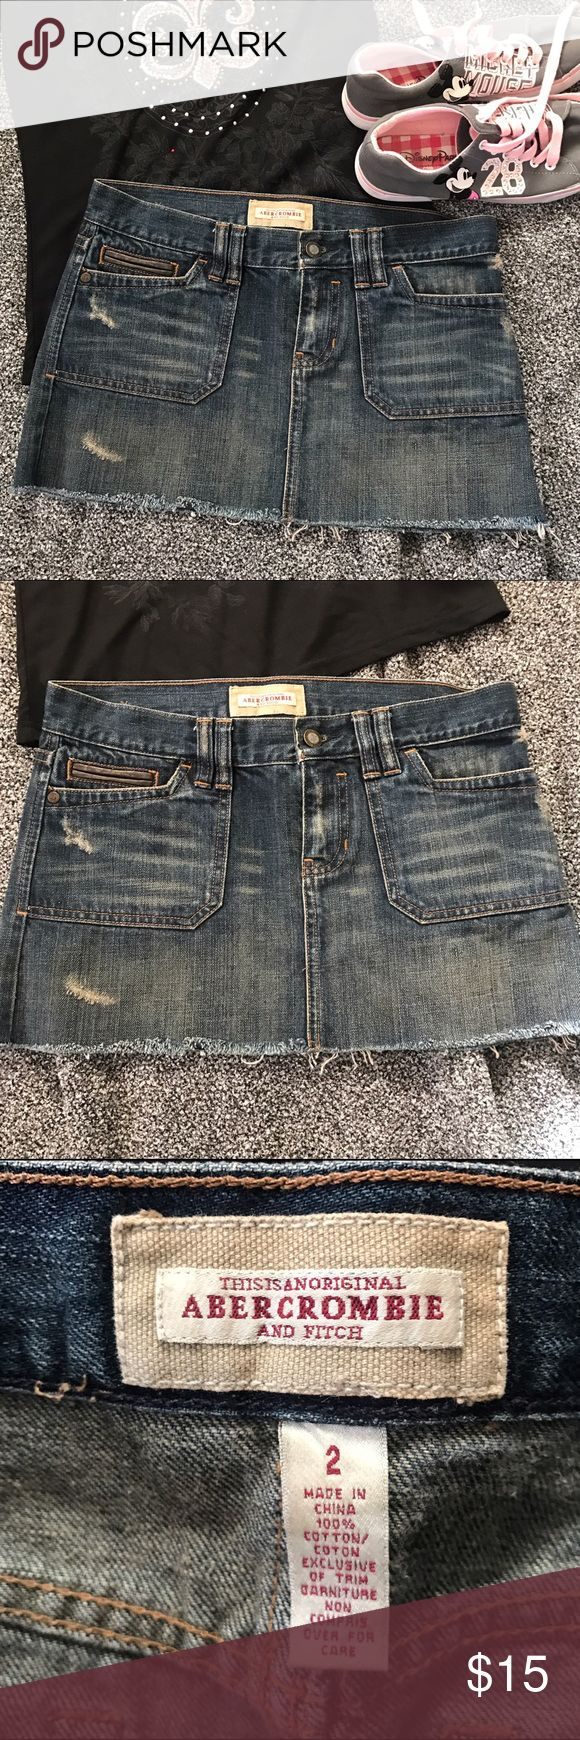 """🆕Abercrombie Distressed Denim Skirt Size 2 Distressed denim mini skirt by Abercrombie and Fitch. Cute decorative brown leather strip and buckle in back. Size 2, waist measurement 15.5"""" across, hip 17.5"""" across, length 10.5"""" waist to frayed edge. Abercrombie & Fitch Skirts Mini"""